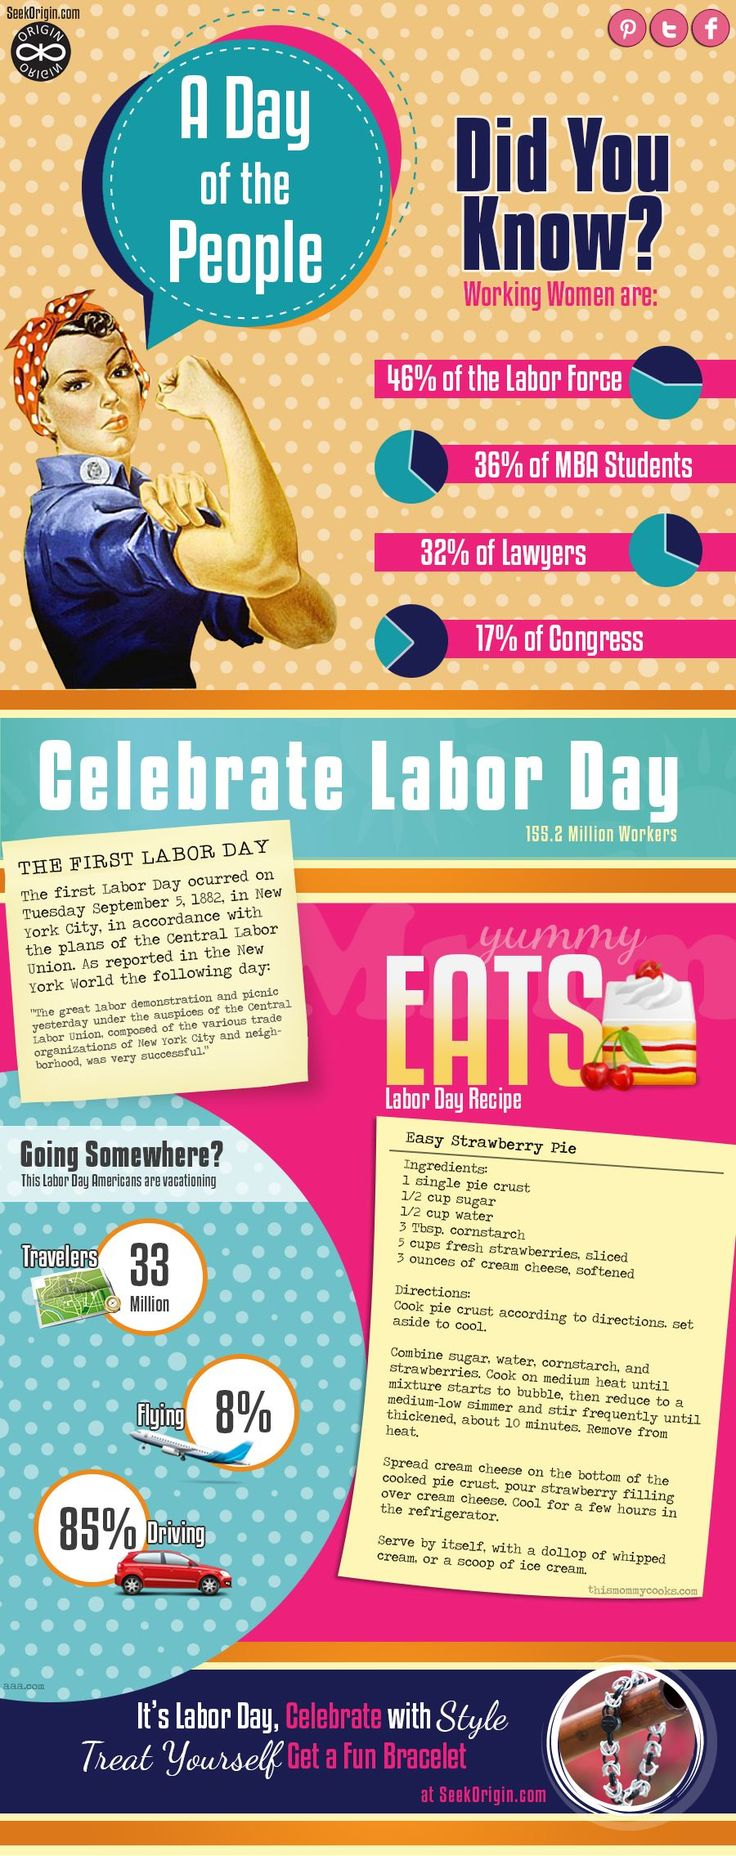 199 best holiday labor day images on pinterest happy labour labor day infographic kristyandbryce Image collections